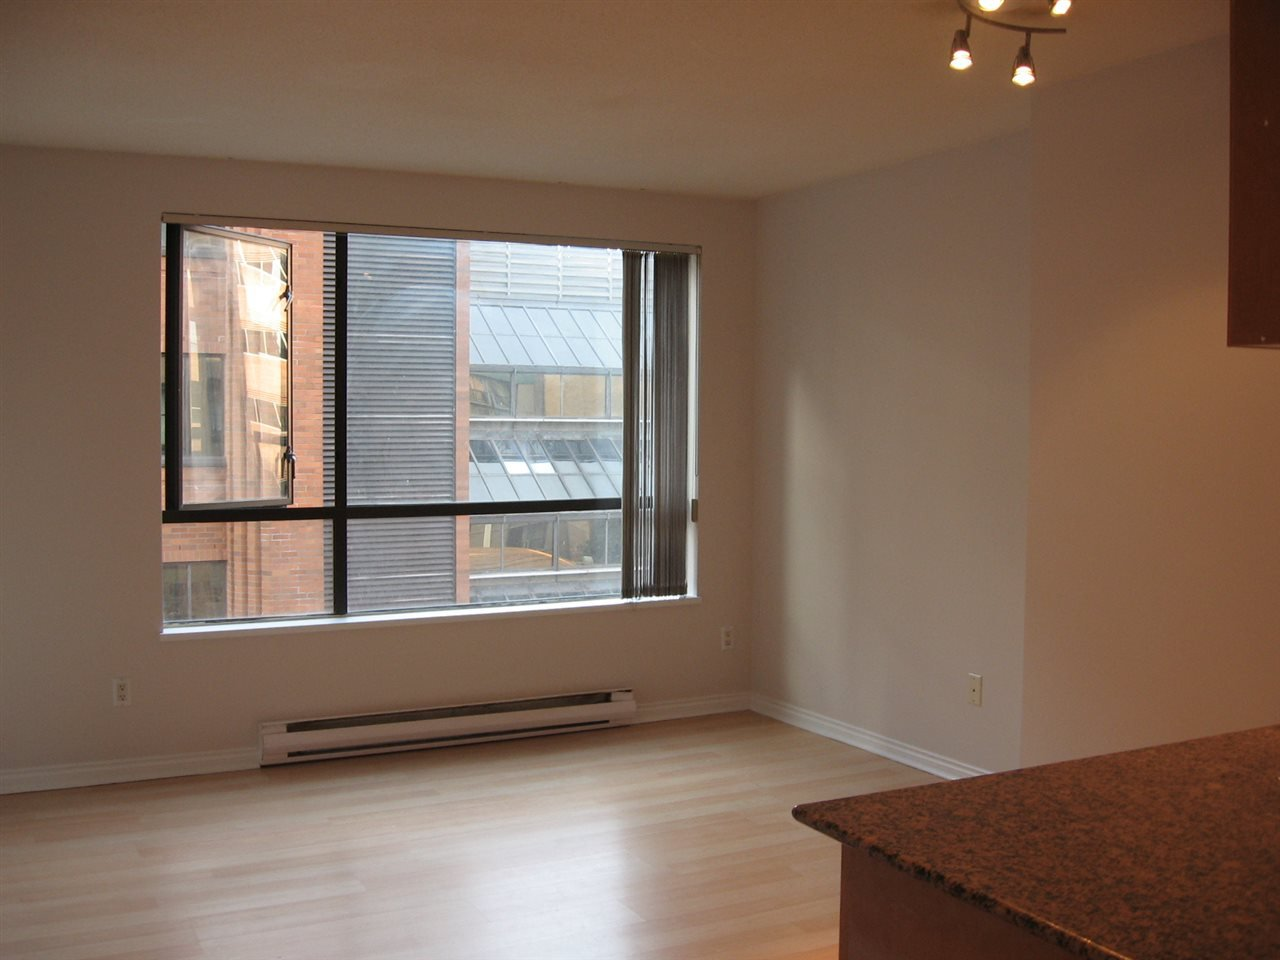 Photo 15: Photos: 801-1189 Howe Street in Vancouver: Yaletown Condo for rent (Downtown Vancouver)